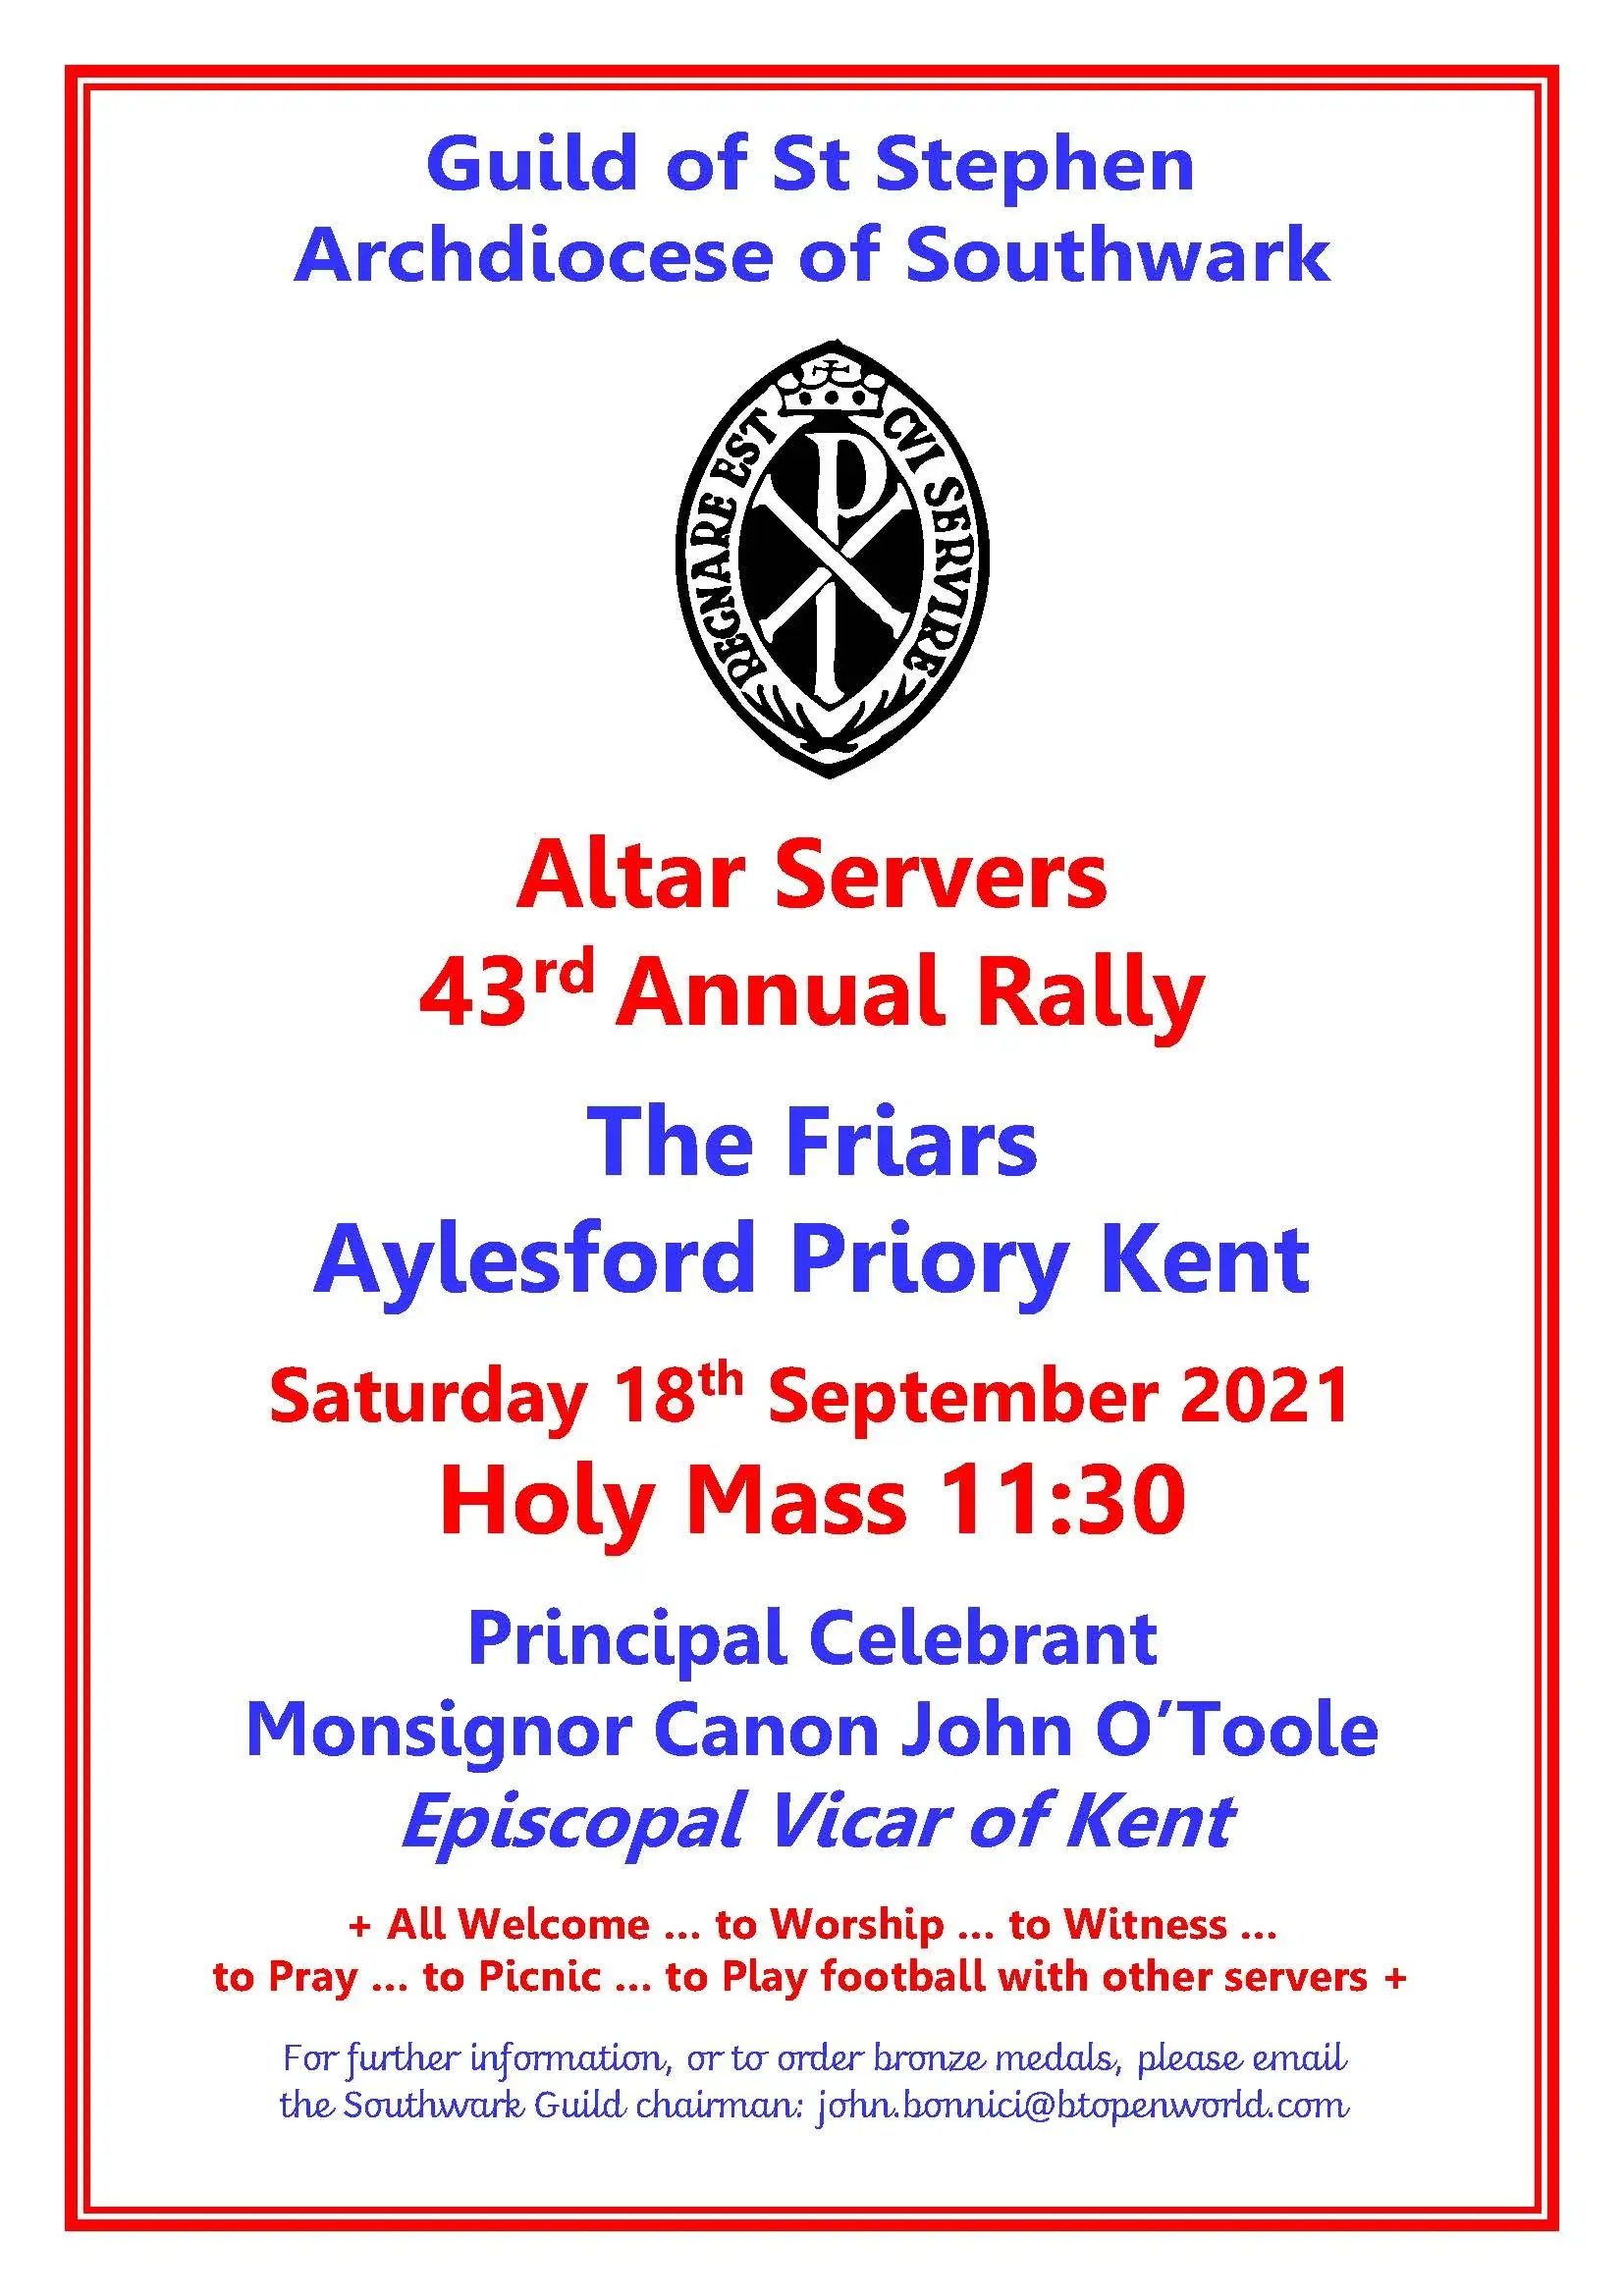 Guild of St Stephen Annual Altar Servers' Rally